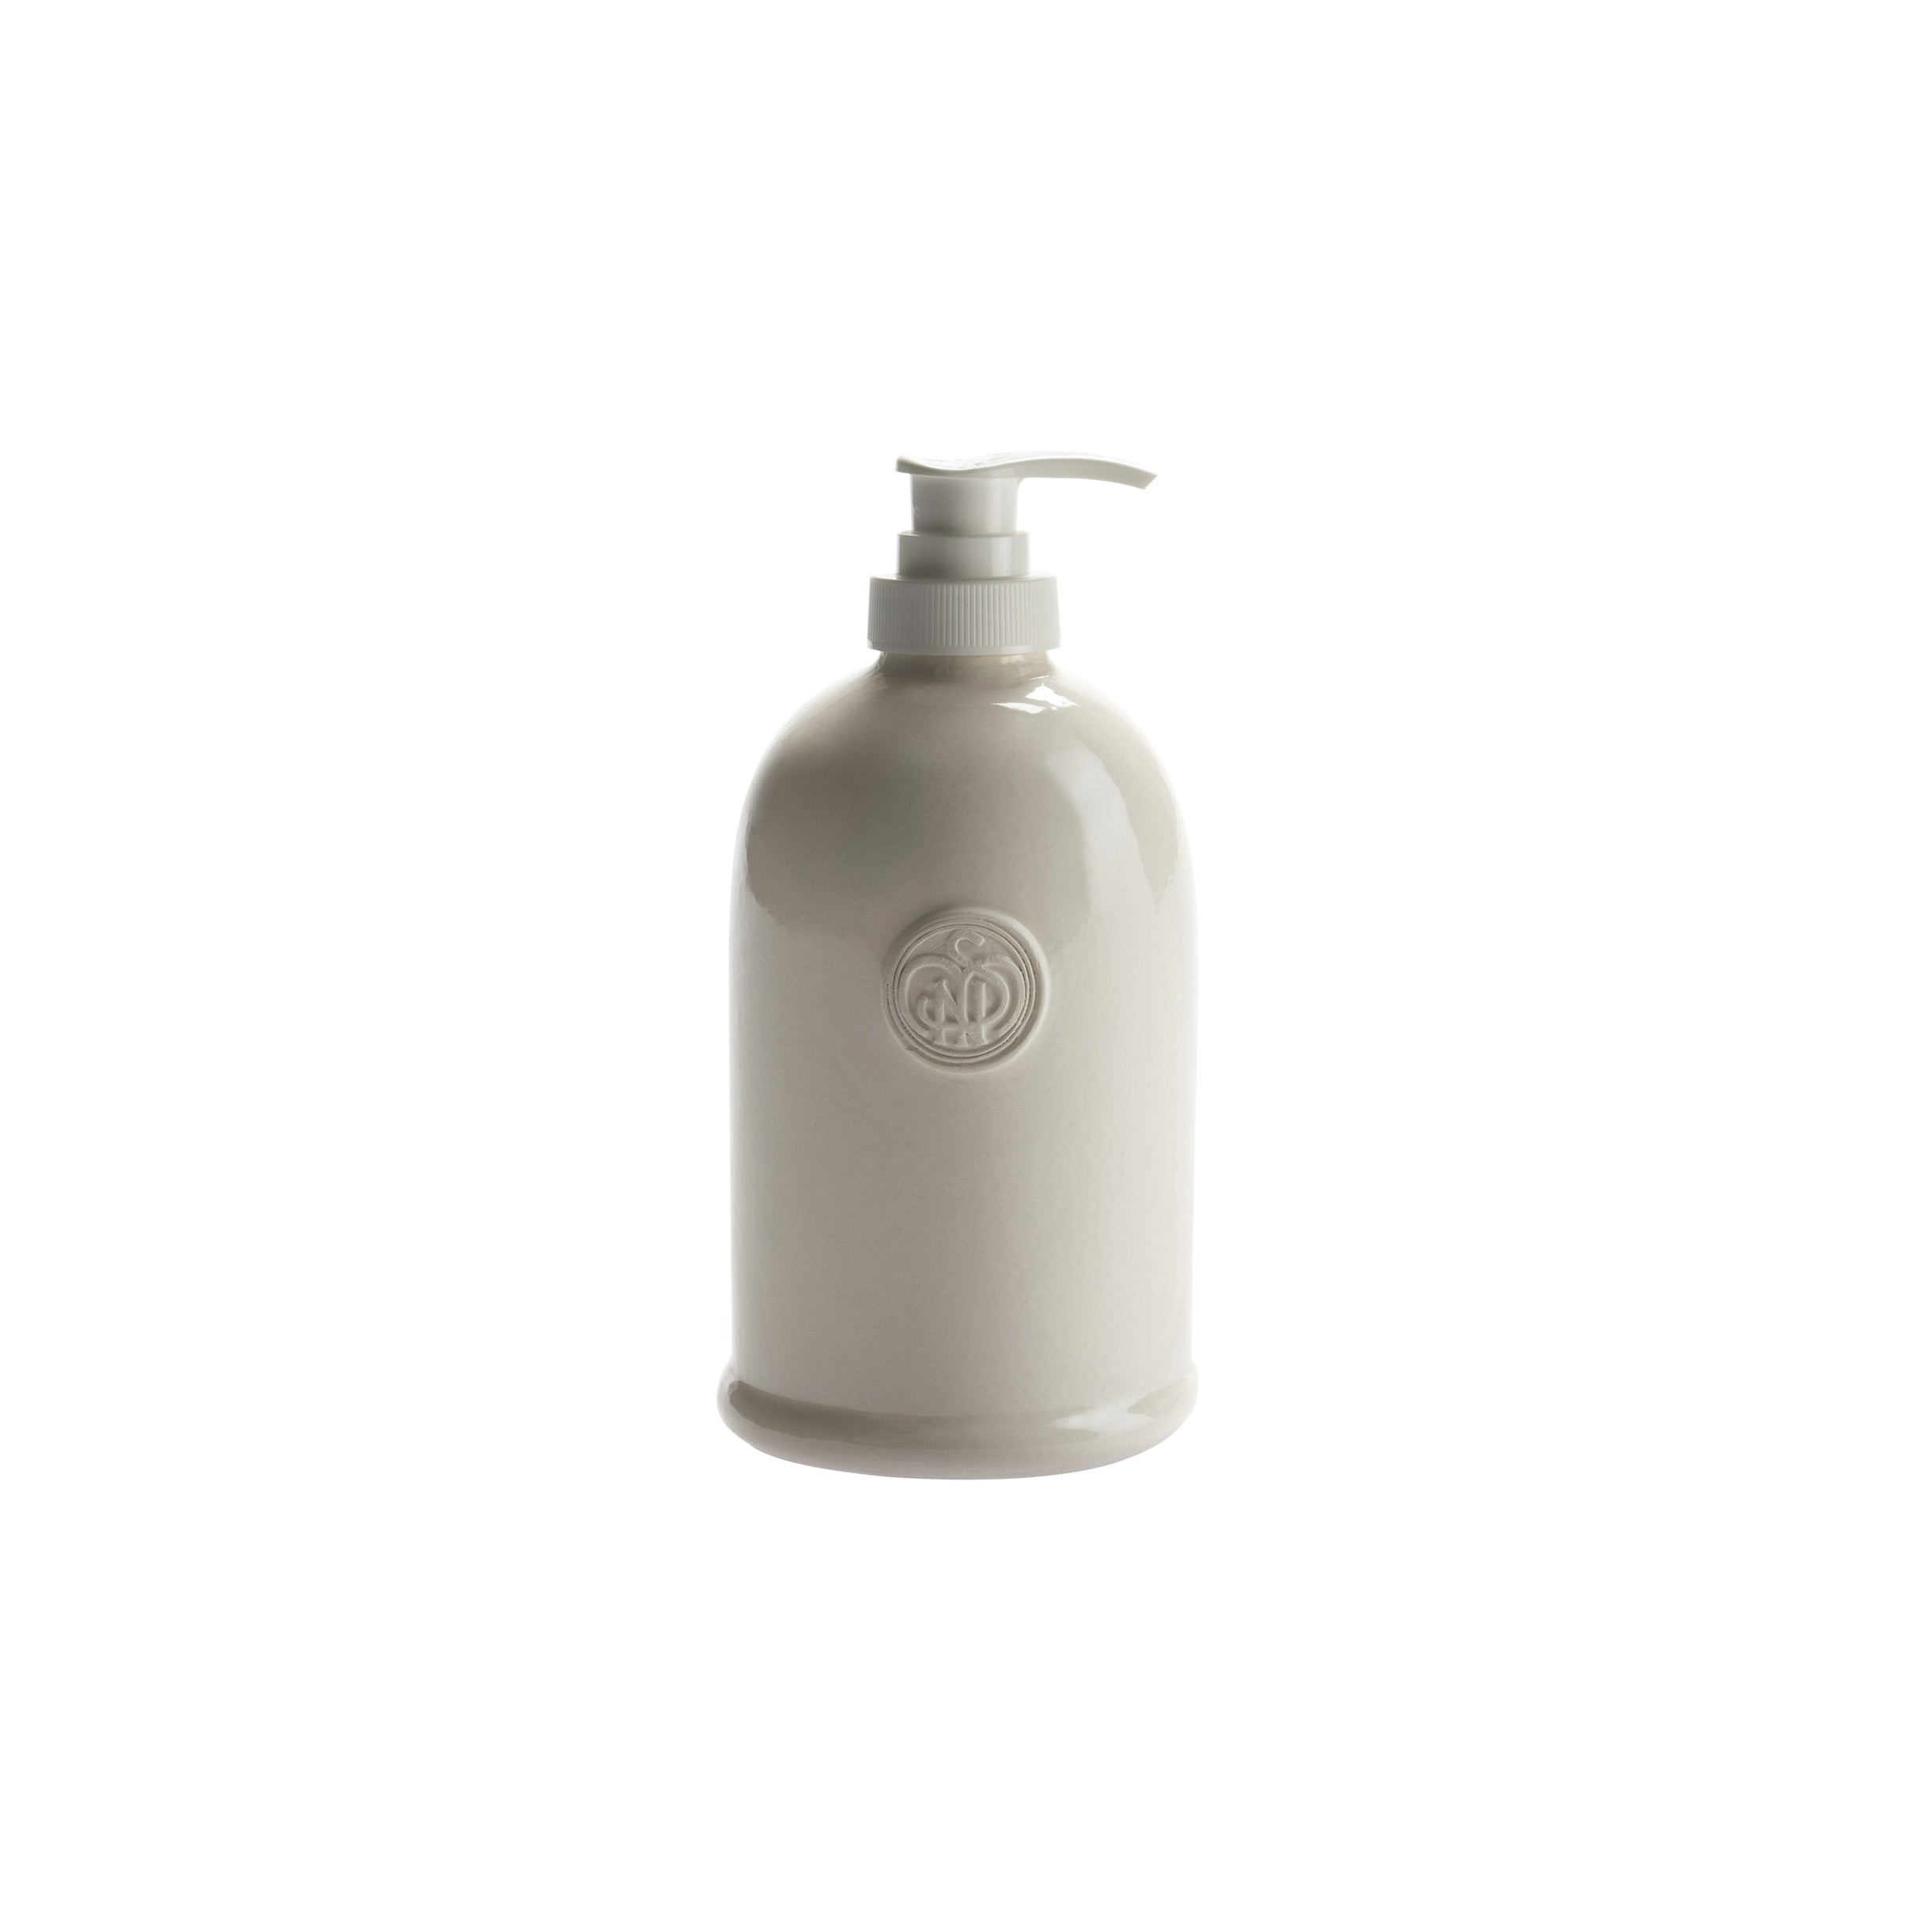 Santa Maria Novella Ceramic Soap Dispenser